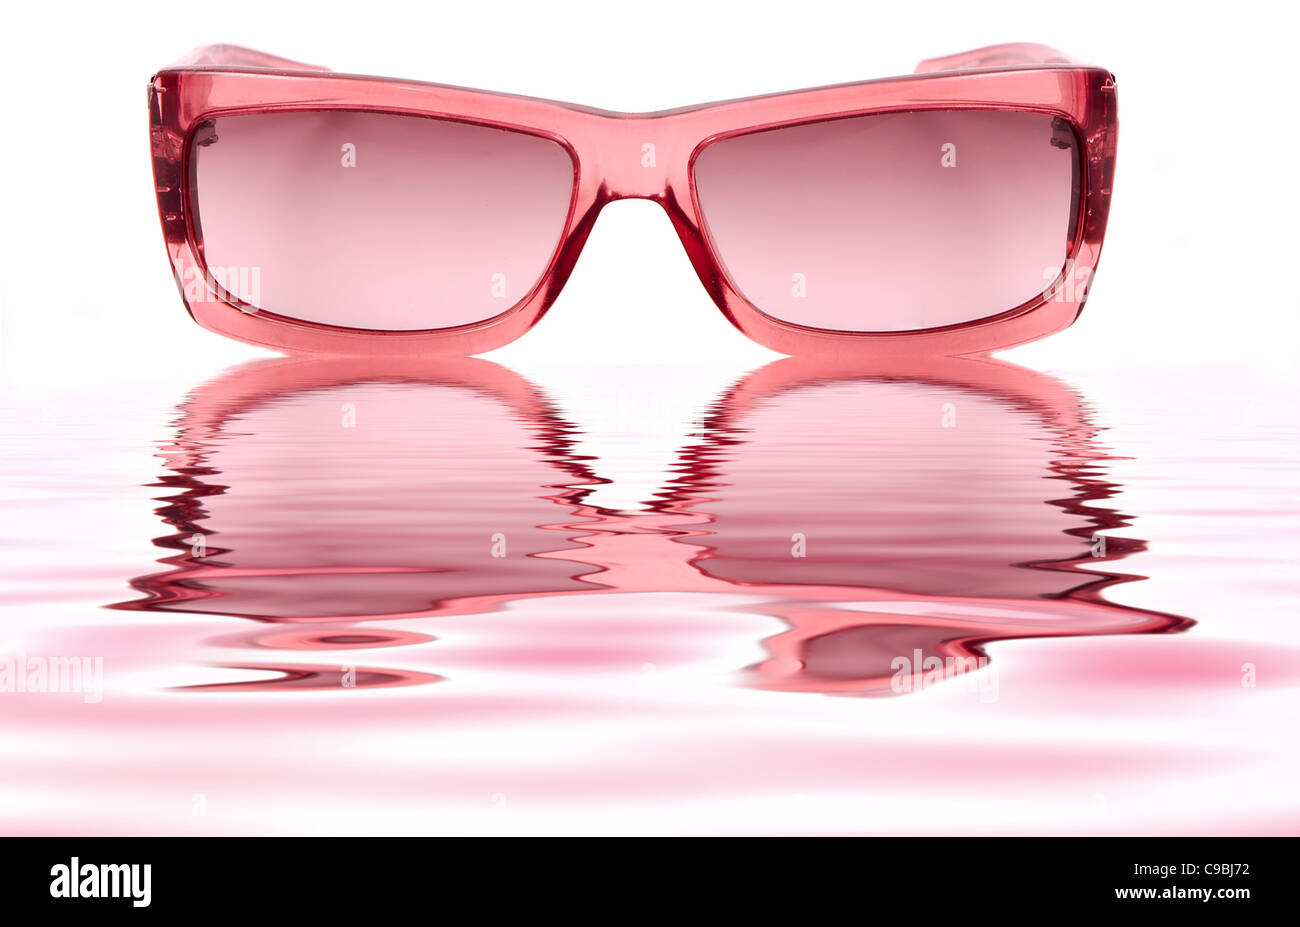 4d4225d1b5d2d1 A pair of pink ladies sunglasses isolated on a white background and  reflecting in water ripples